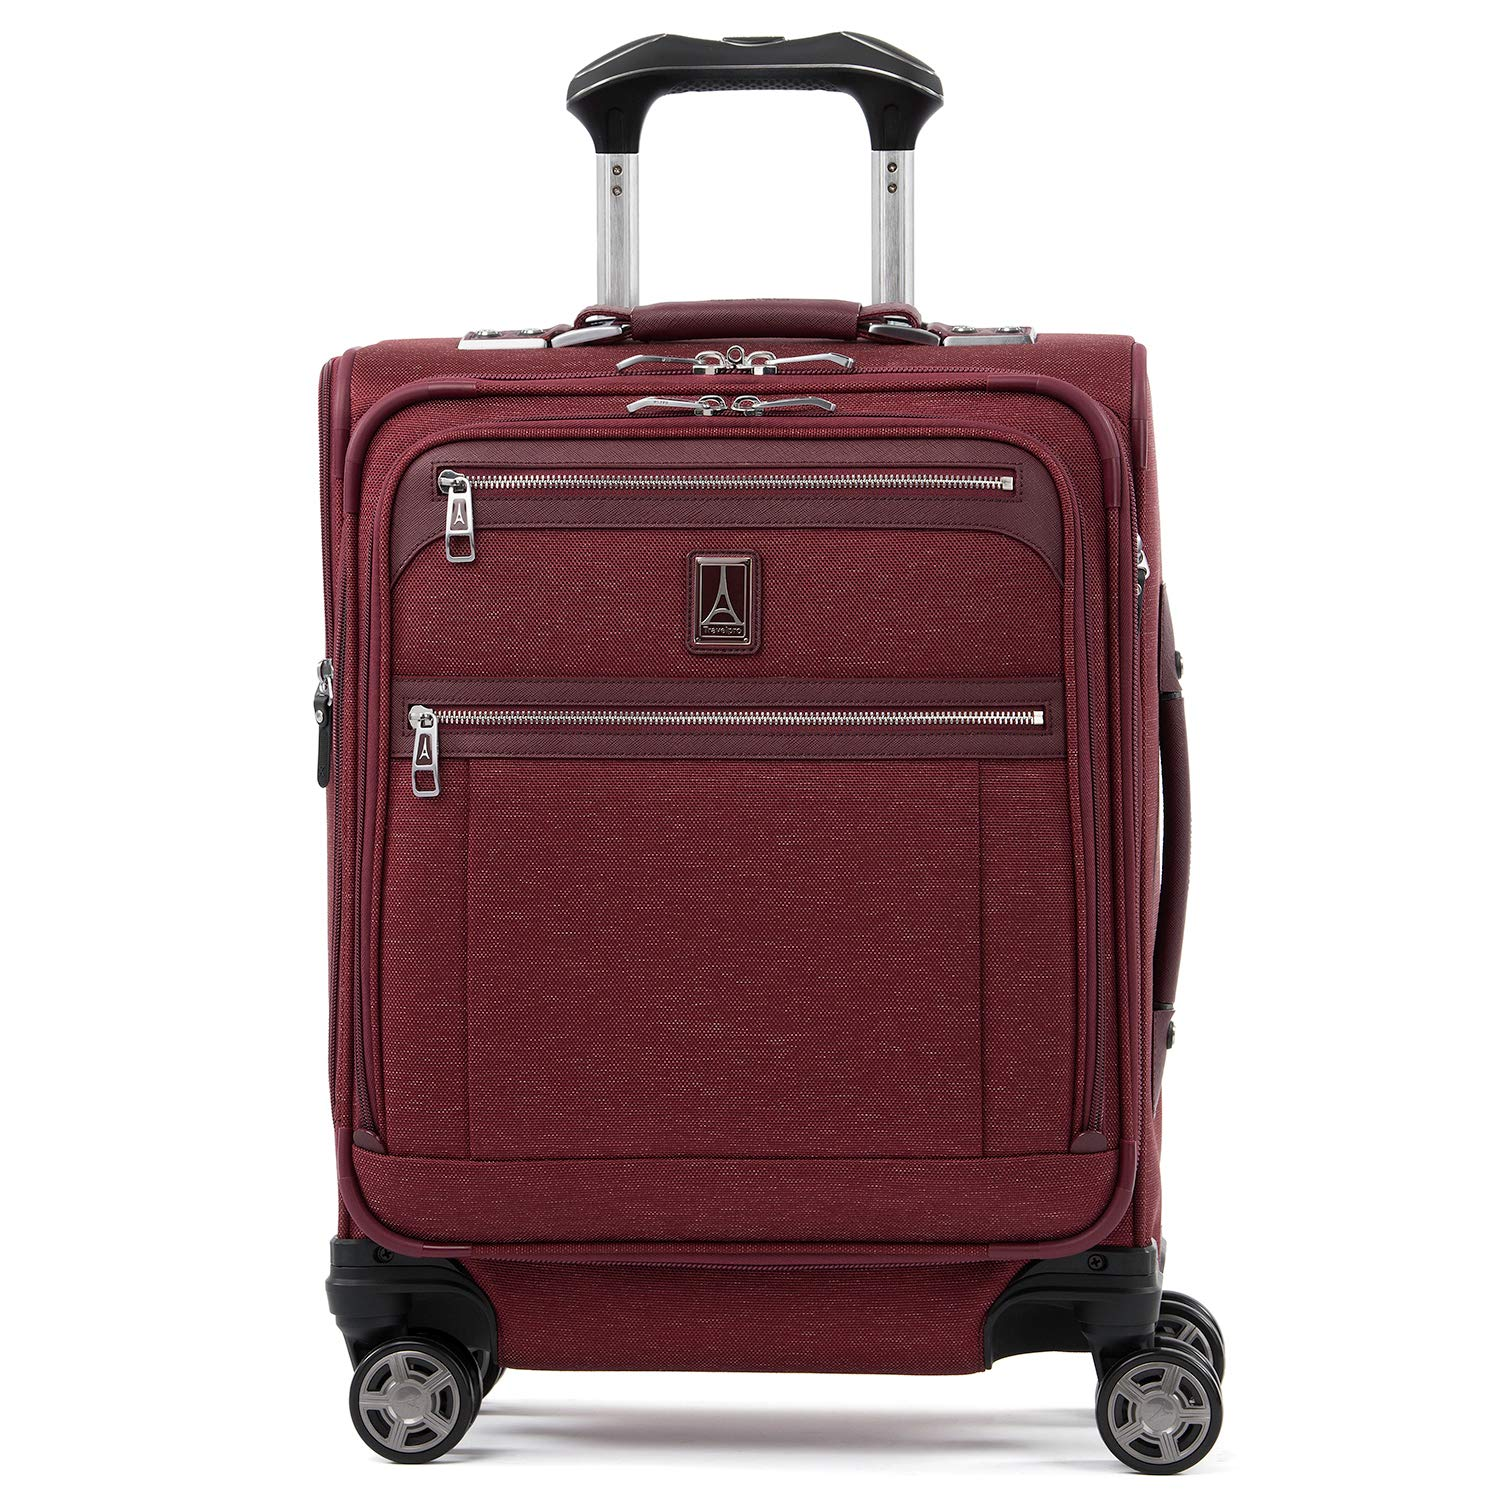 Travelpro Luggage Platinum Elite 20'' Carry-on Intl Expandable Spinner w/USB Port, Bordeaux